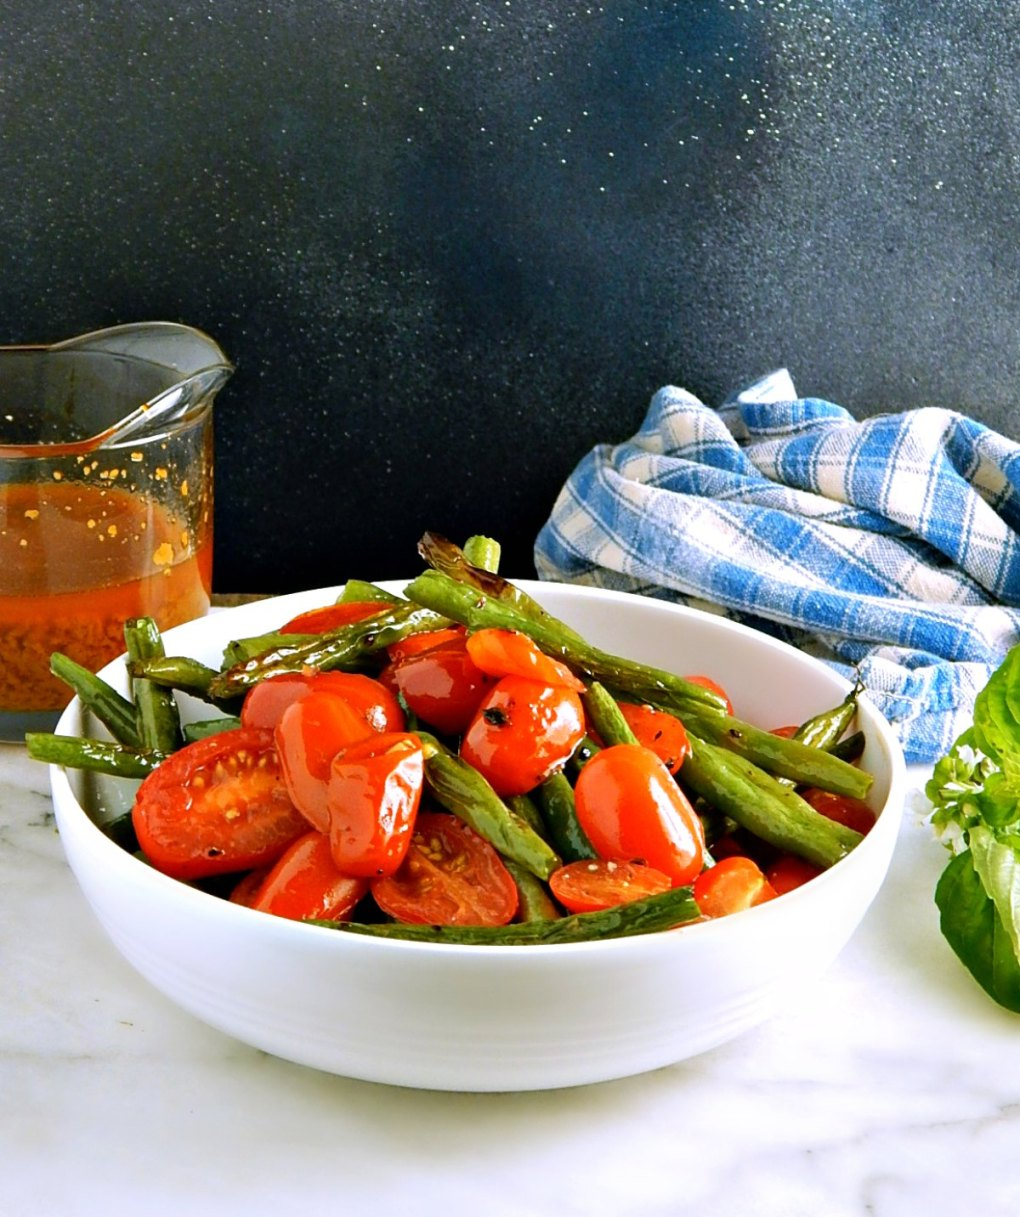 Oven Roasted Green Beans & Cherry Tomatoes